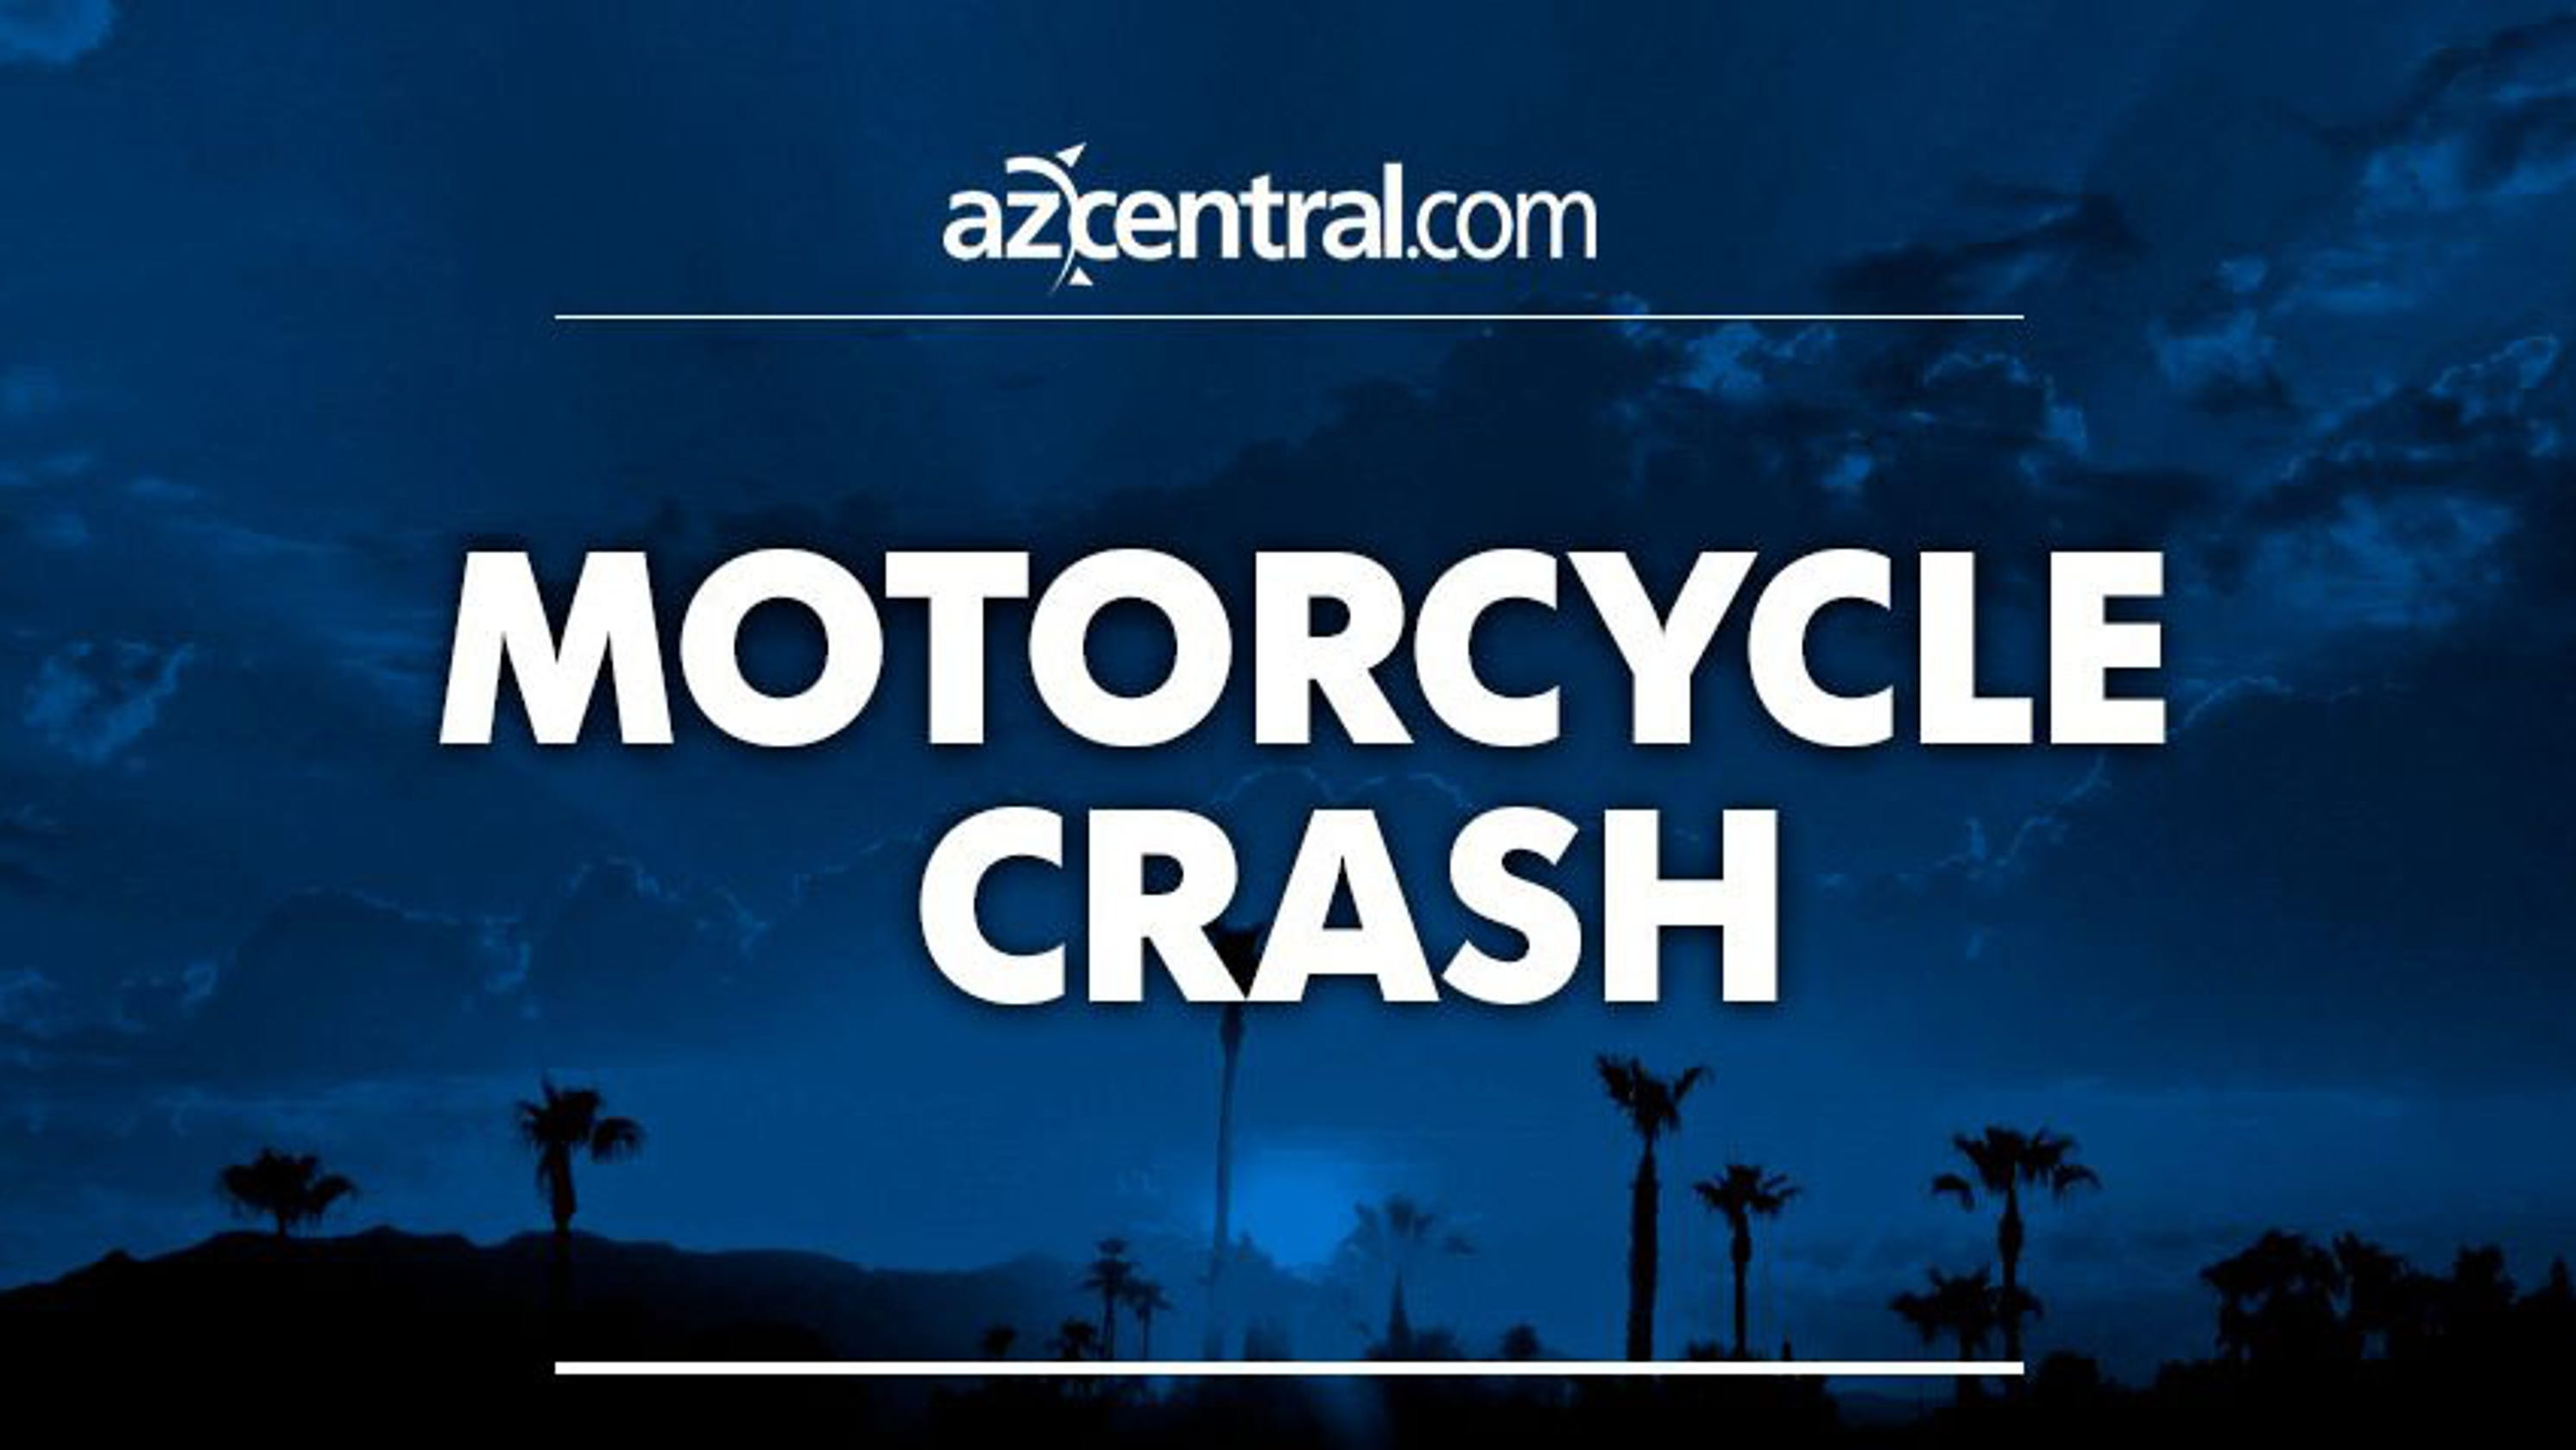 Motorcyclist Maynard Williams ID'd in fatal crash on Carefree Highway